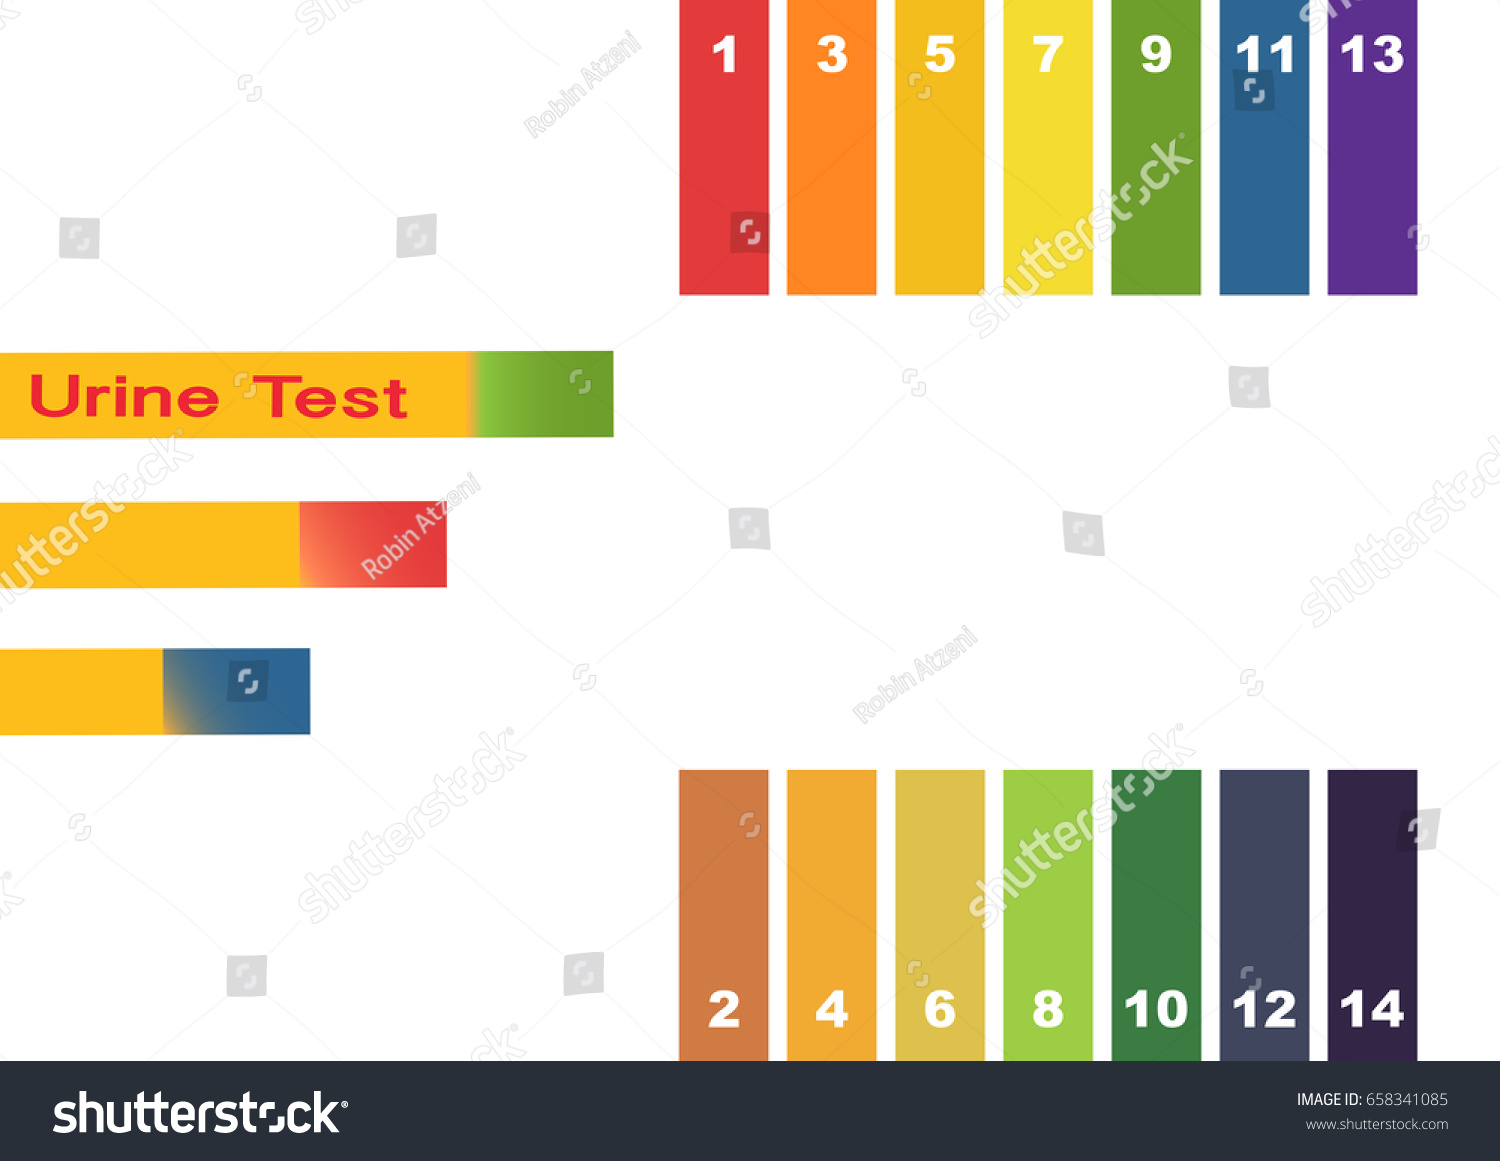 Urine test hand holding test tube stock vector 658341085 hand holding test tube with ph indicator comparing color to scale and litmus nvjuhfo Images